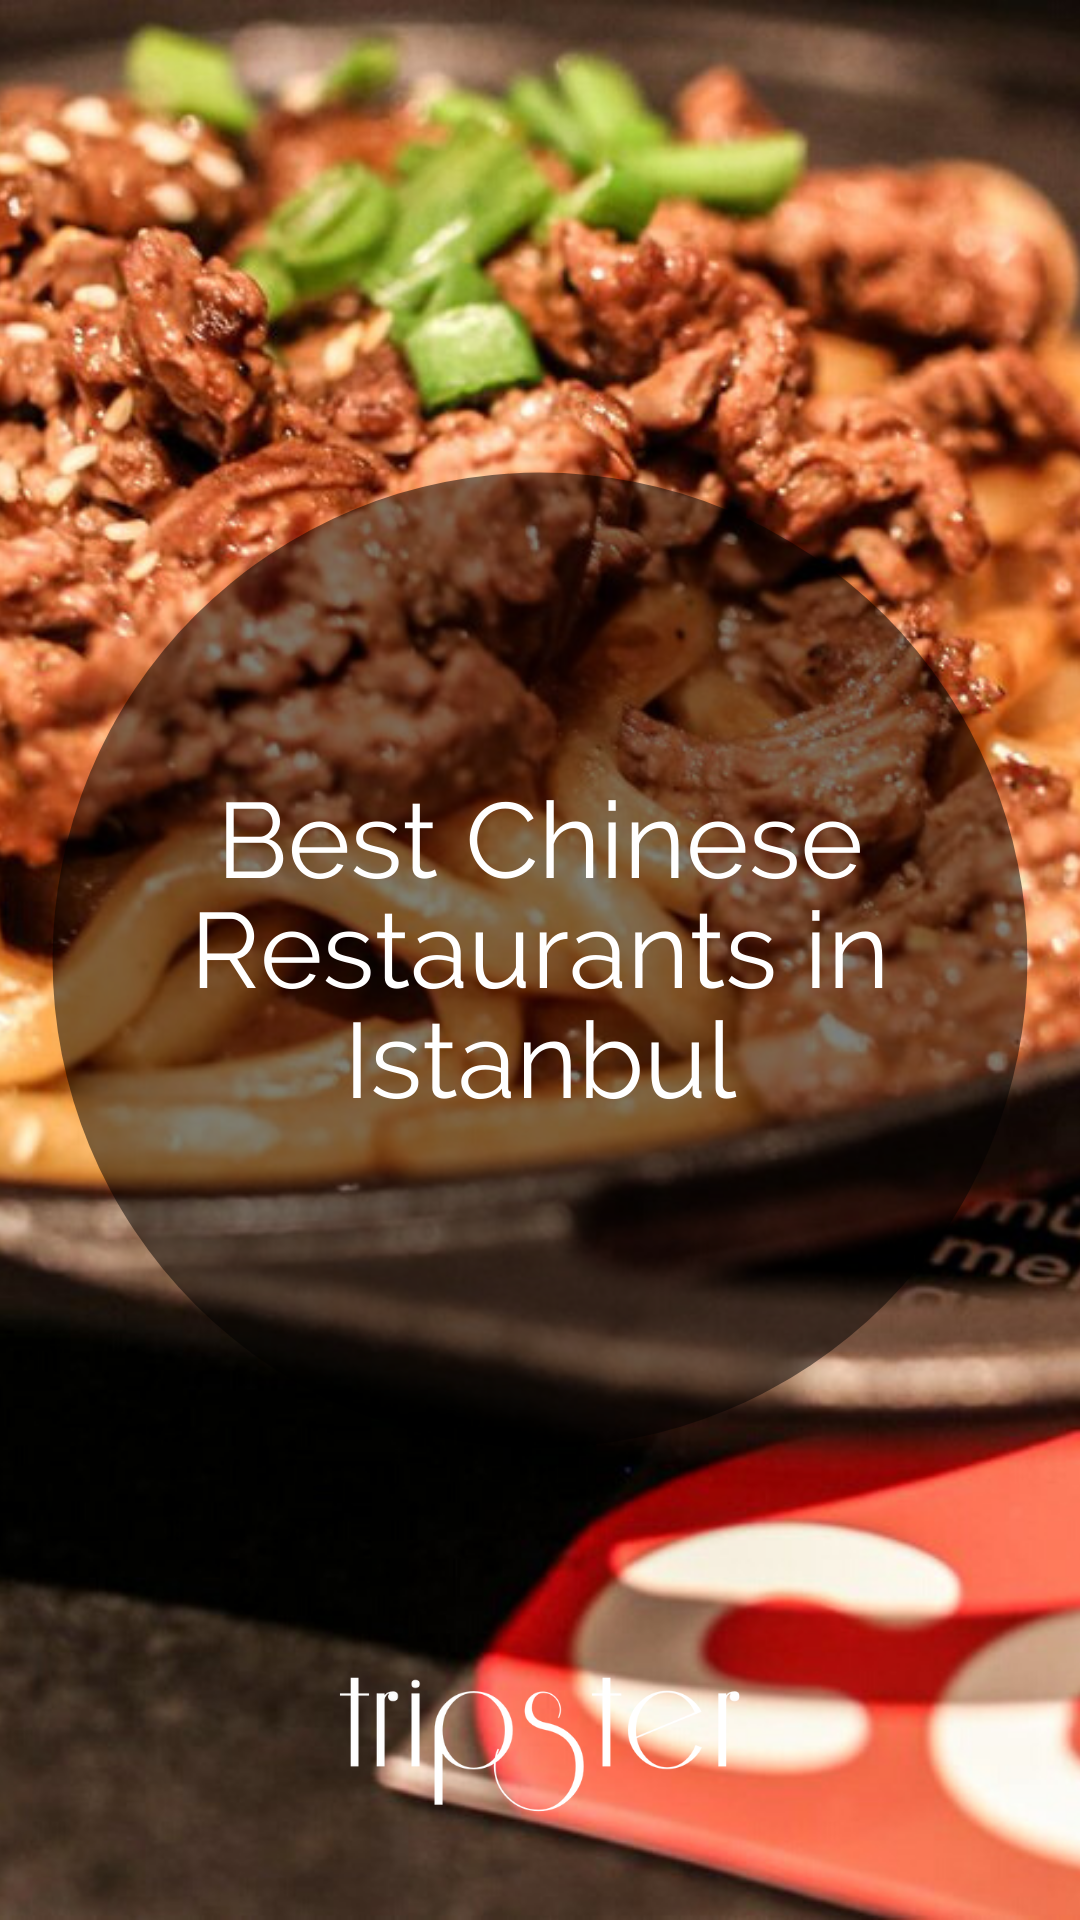 Best Chinese Restaurants In Istanbul In 2020 Chinese Restaurant Restaurant Travel Istanbul Travel Guide